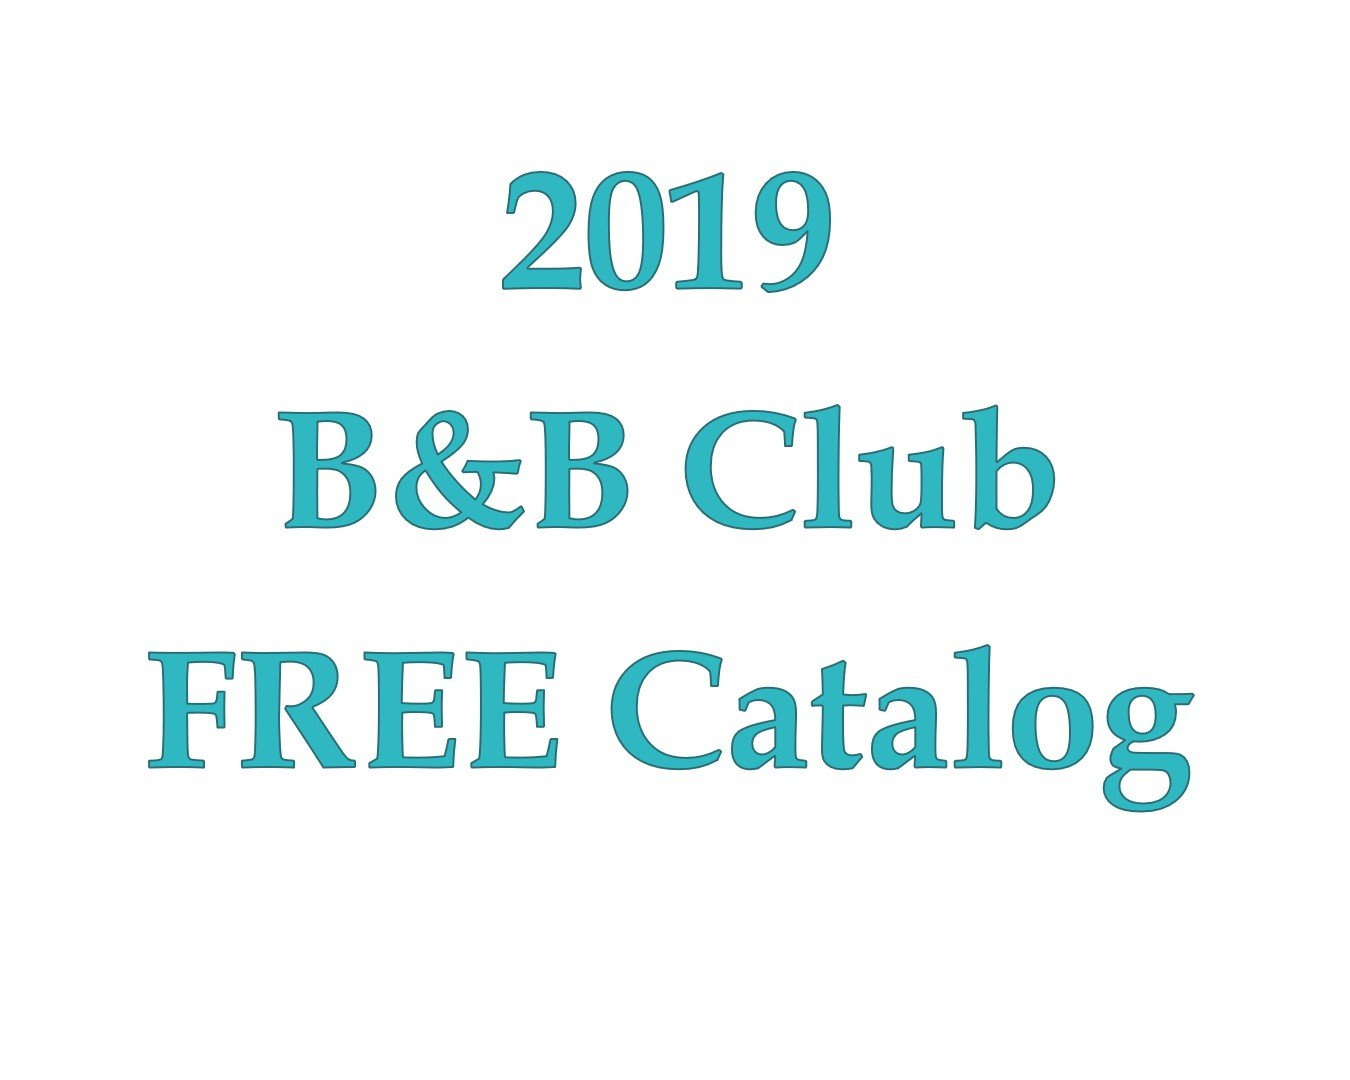 B&B Club Catalog of patterns 2019